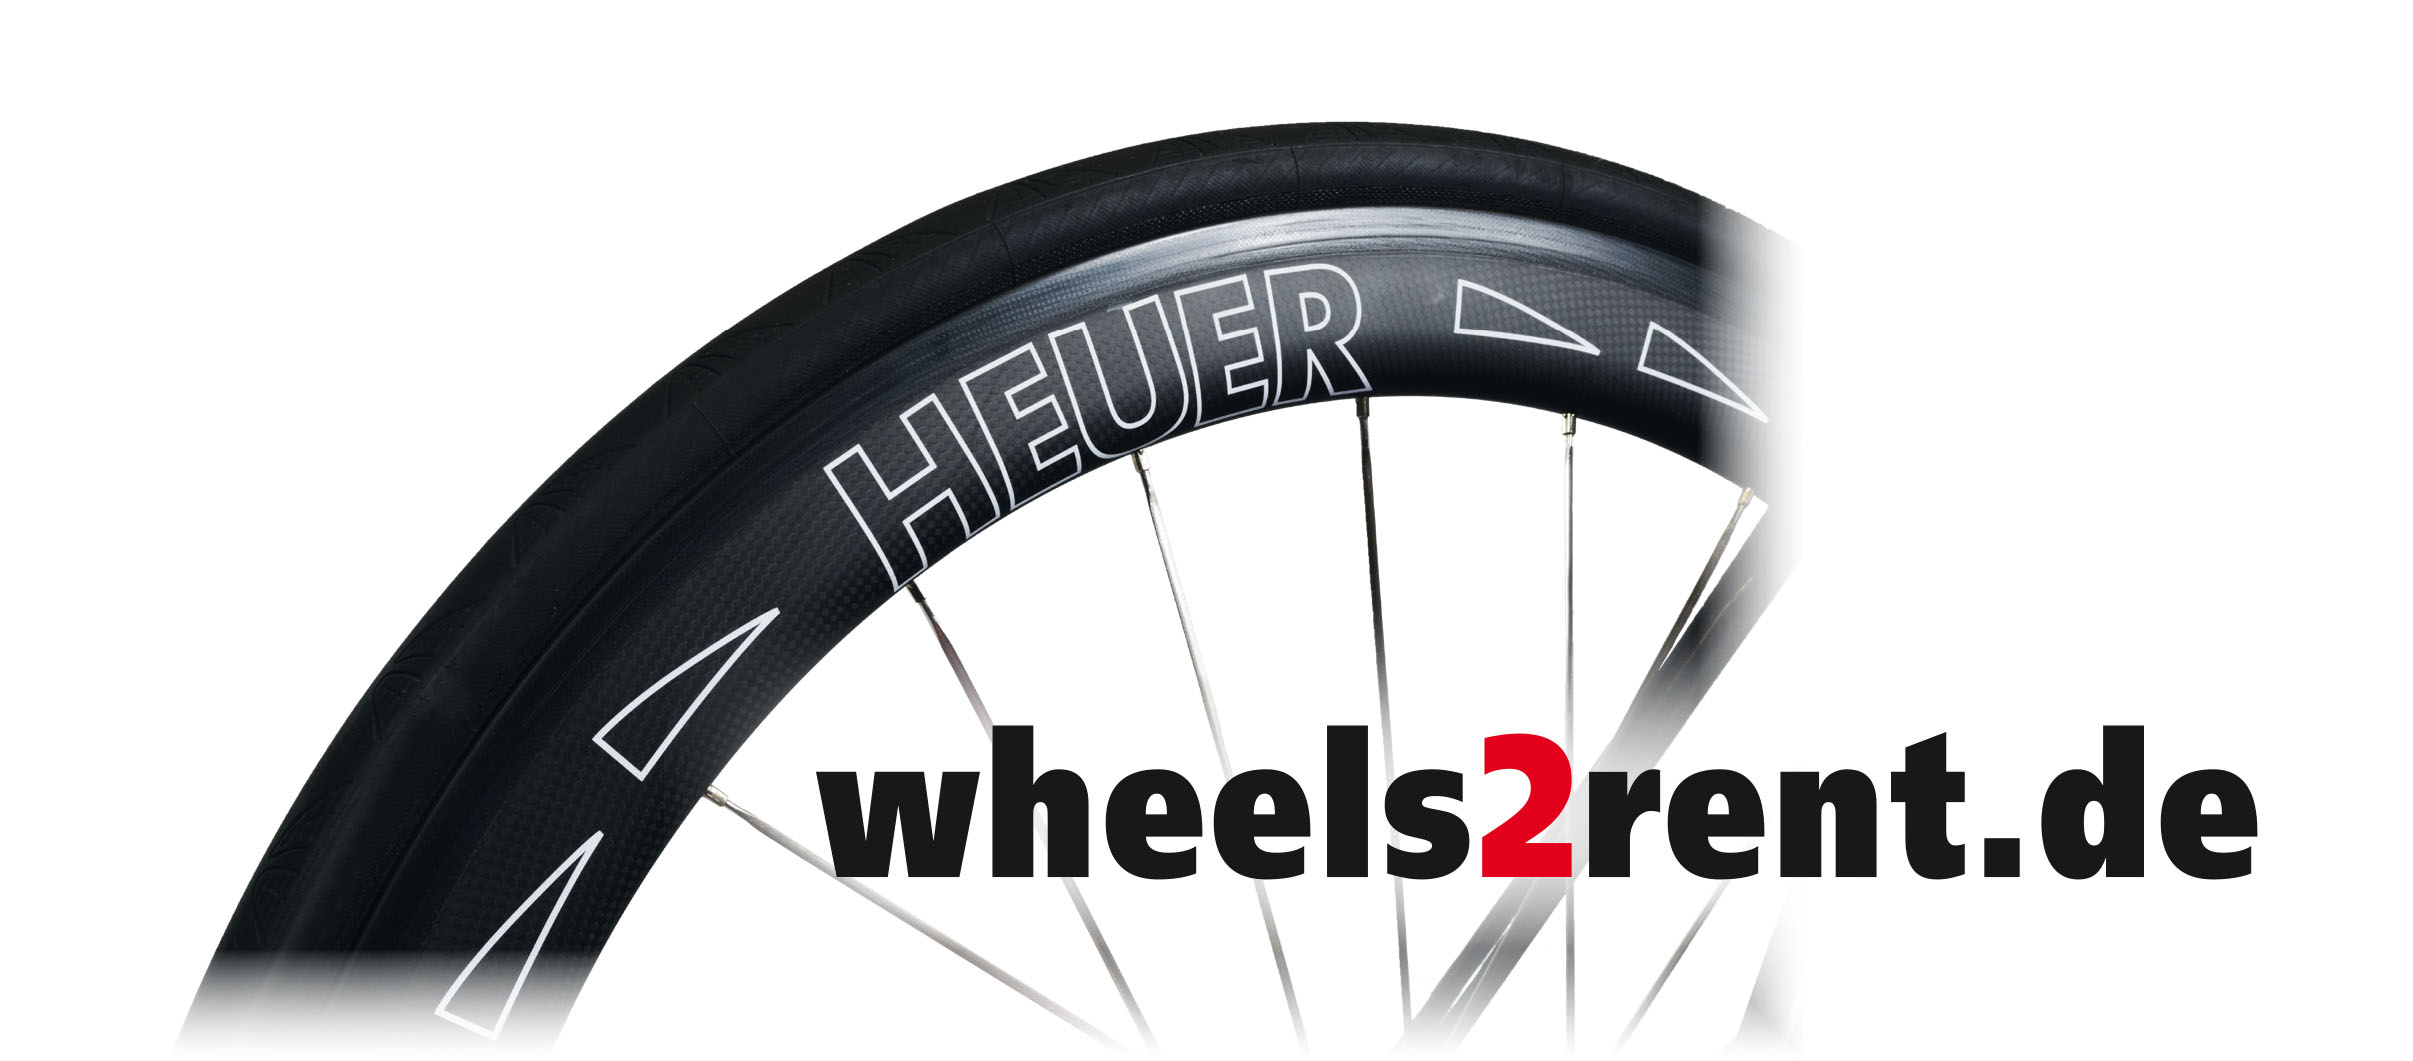 Wheels2rent ist wheels to rent